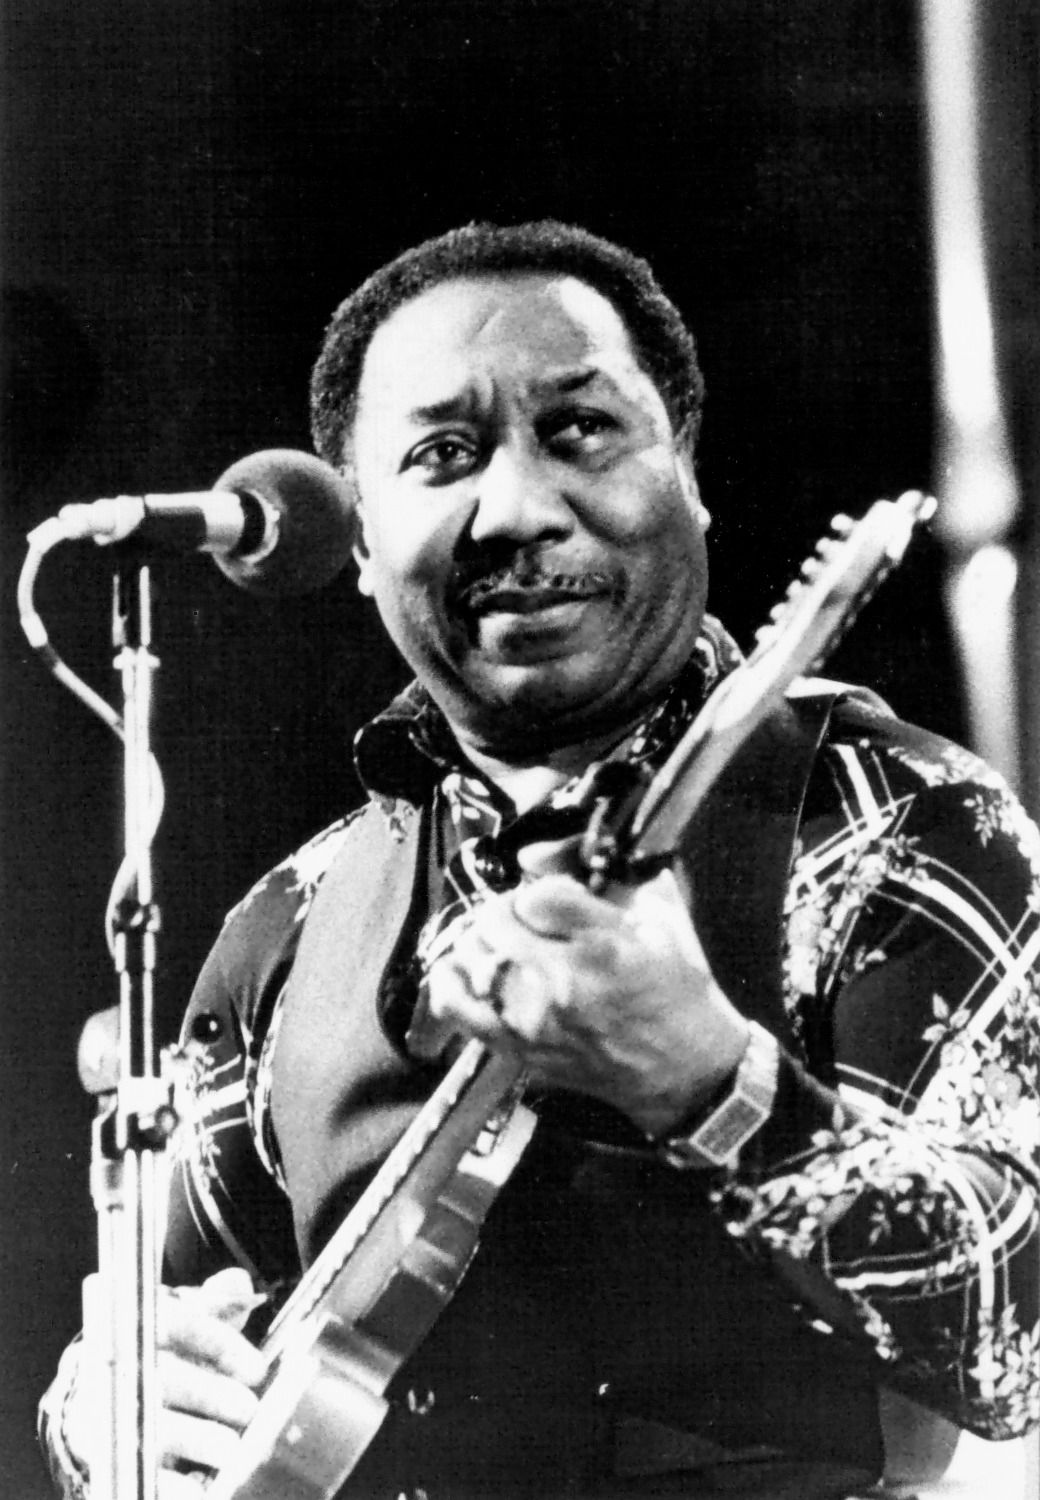 Photo of Muddy Waters playing the guitar.